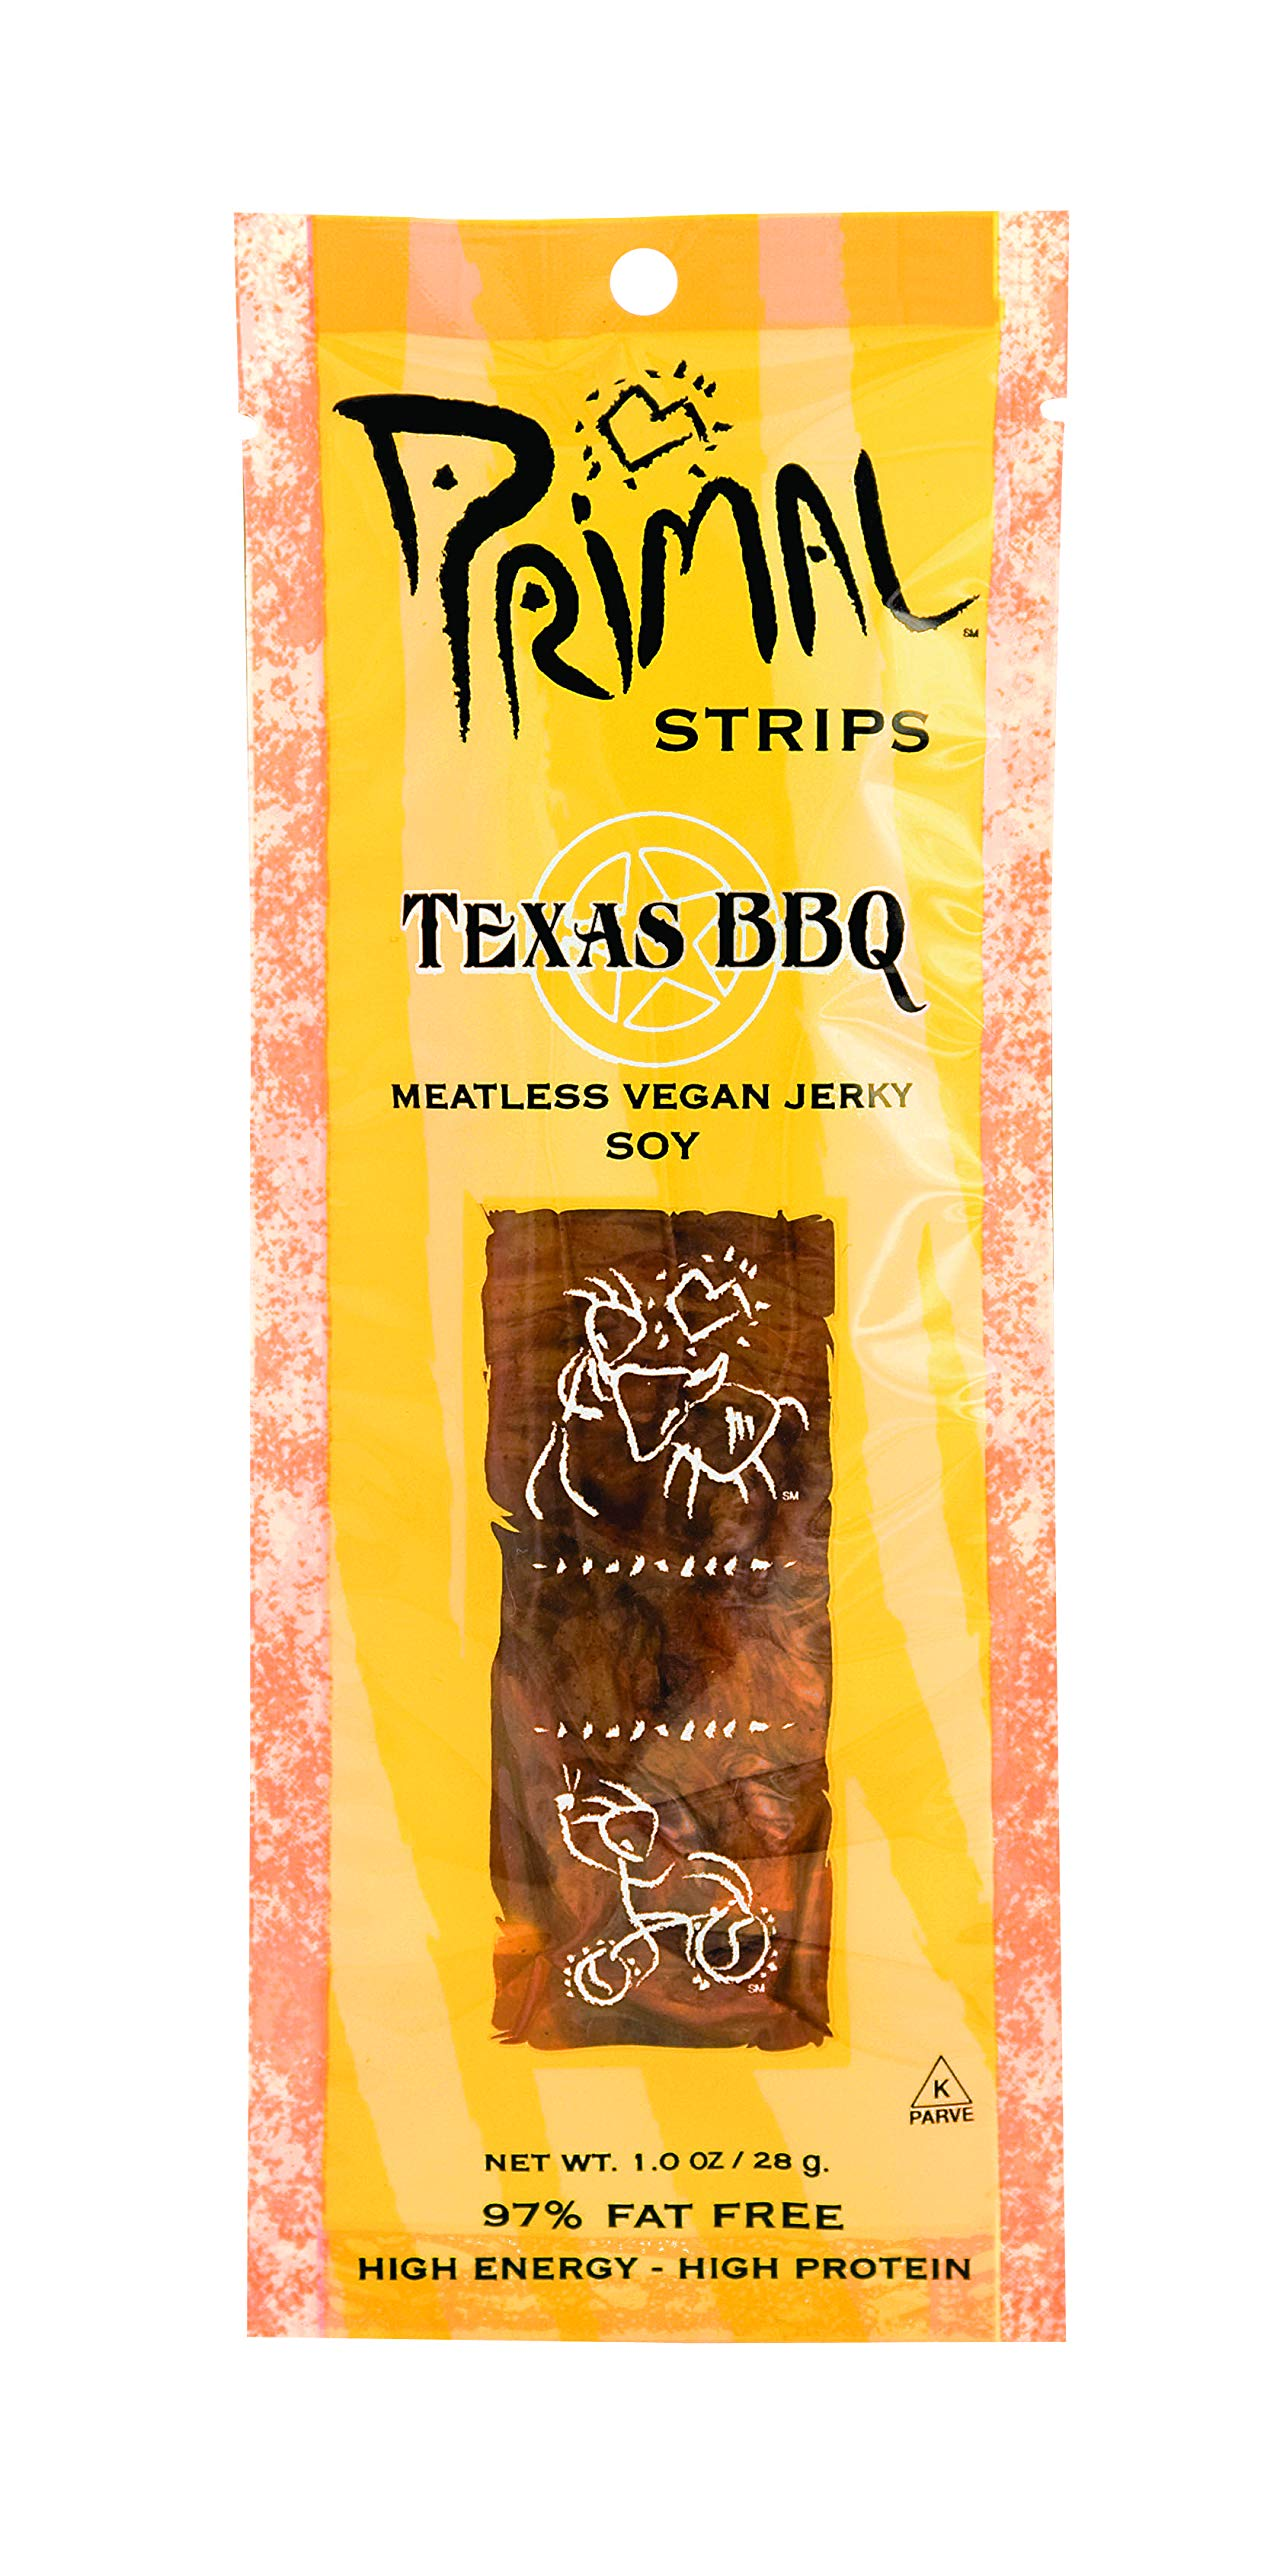 Primal Strips Soy Texas Bbq Meatless Jerky, 1 oz by Primal Strips (Image #1)